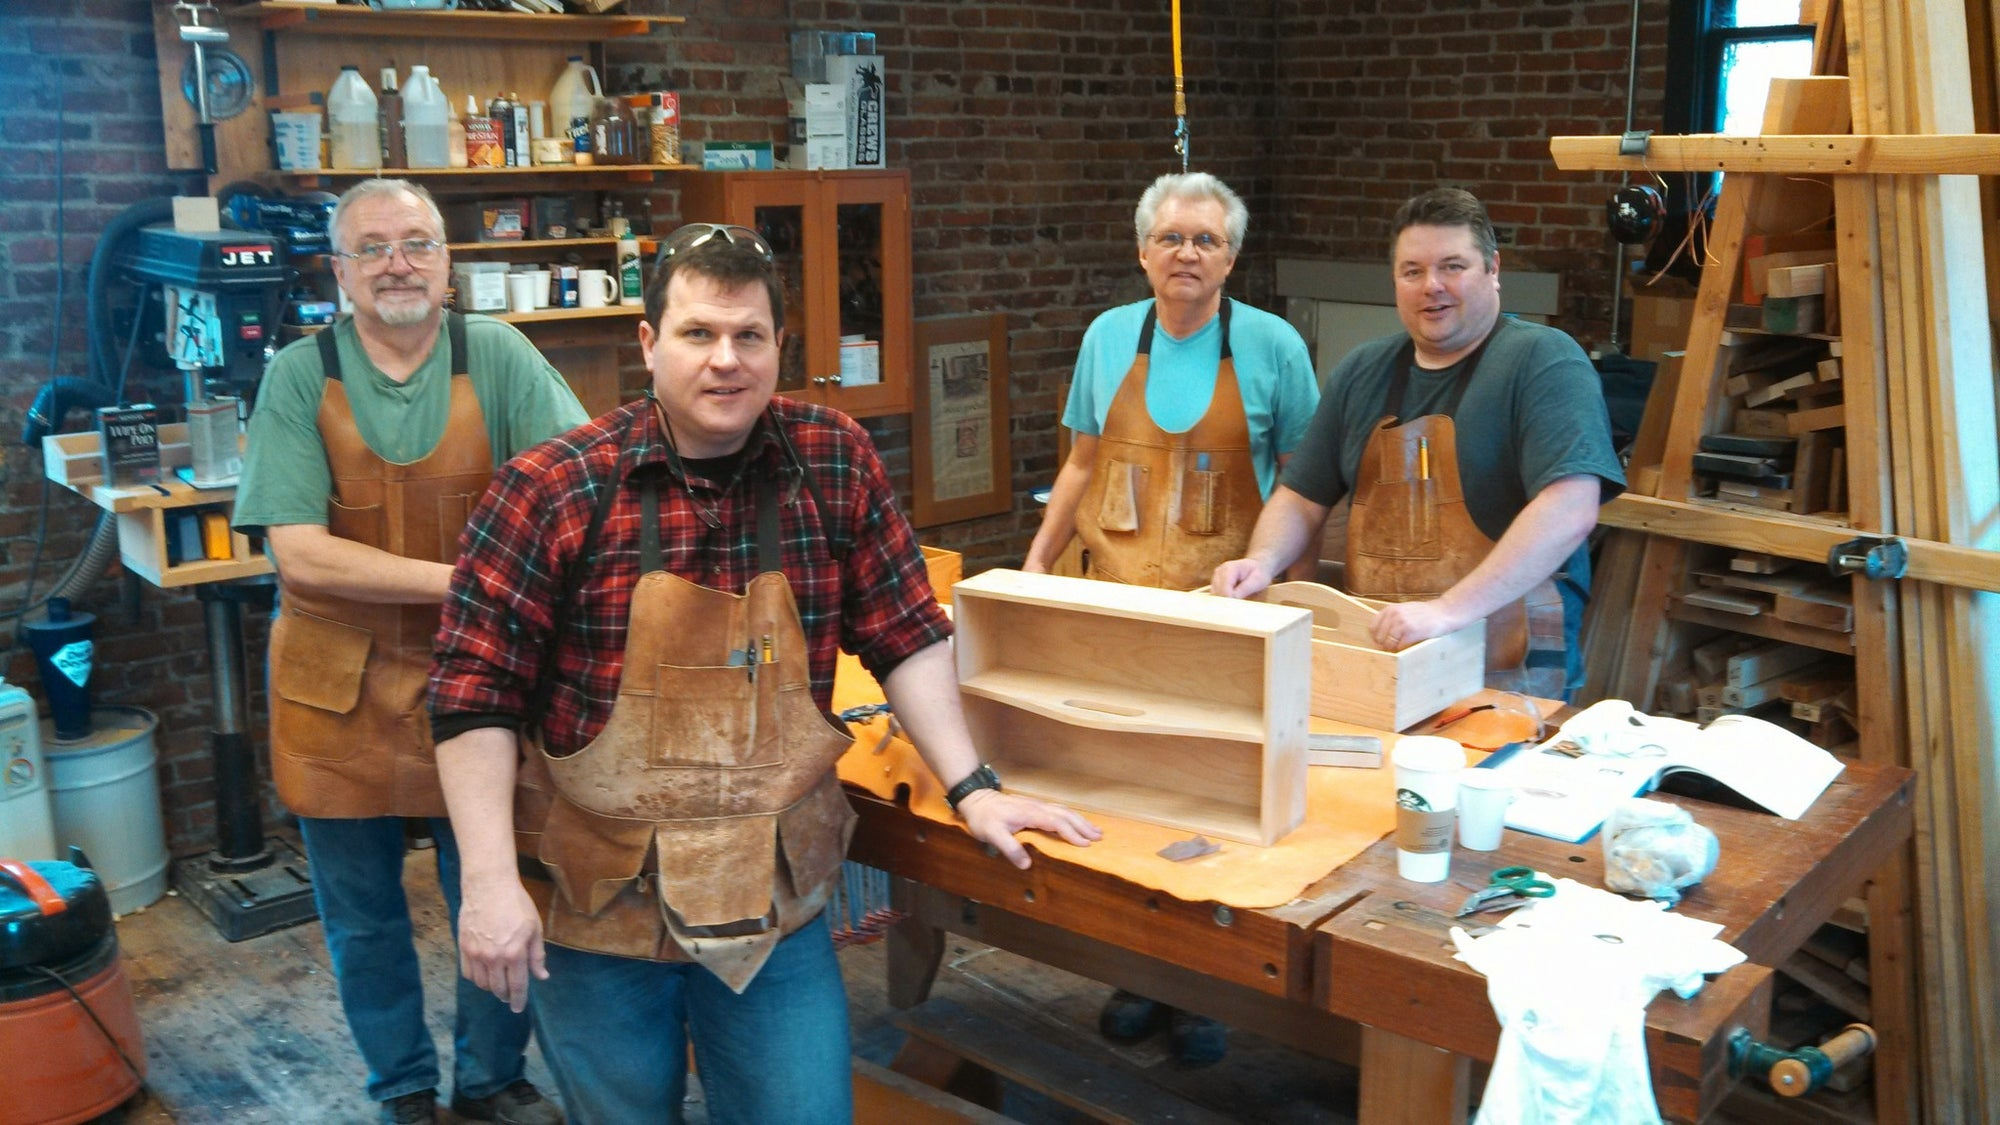 Fundamentals Of Woodworking Weekend Classes Puget Sound Woodworking